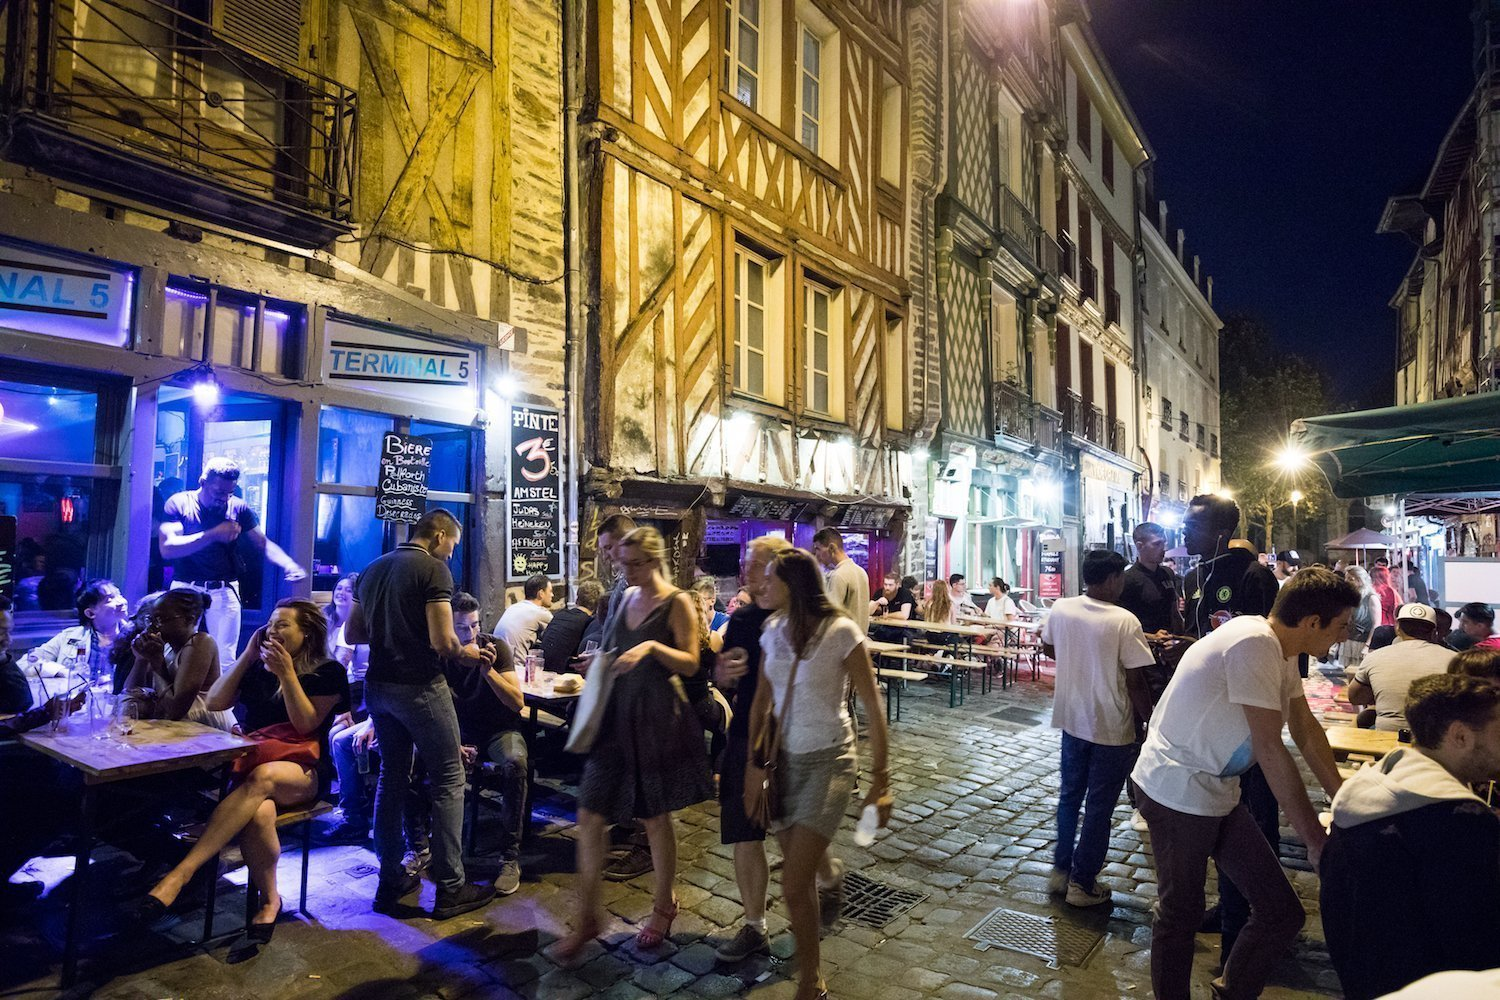 The Saint-Michel street : the Drinker's Alley in Rennes